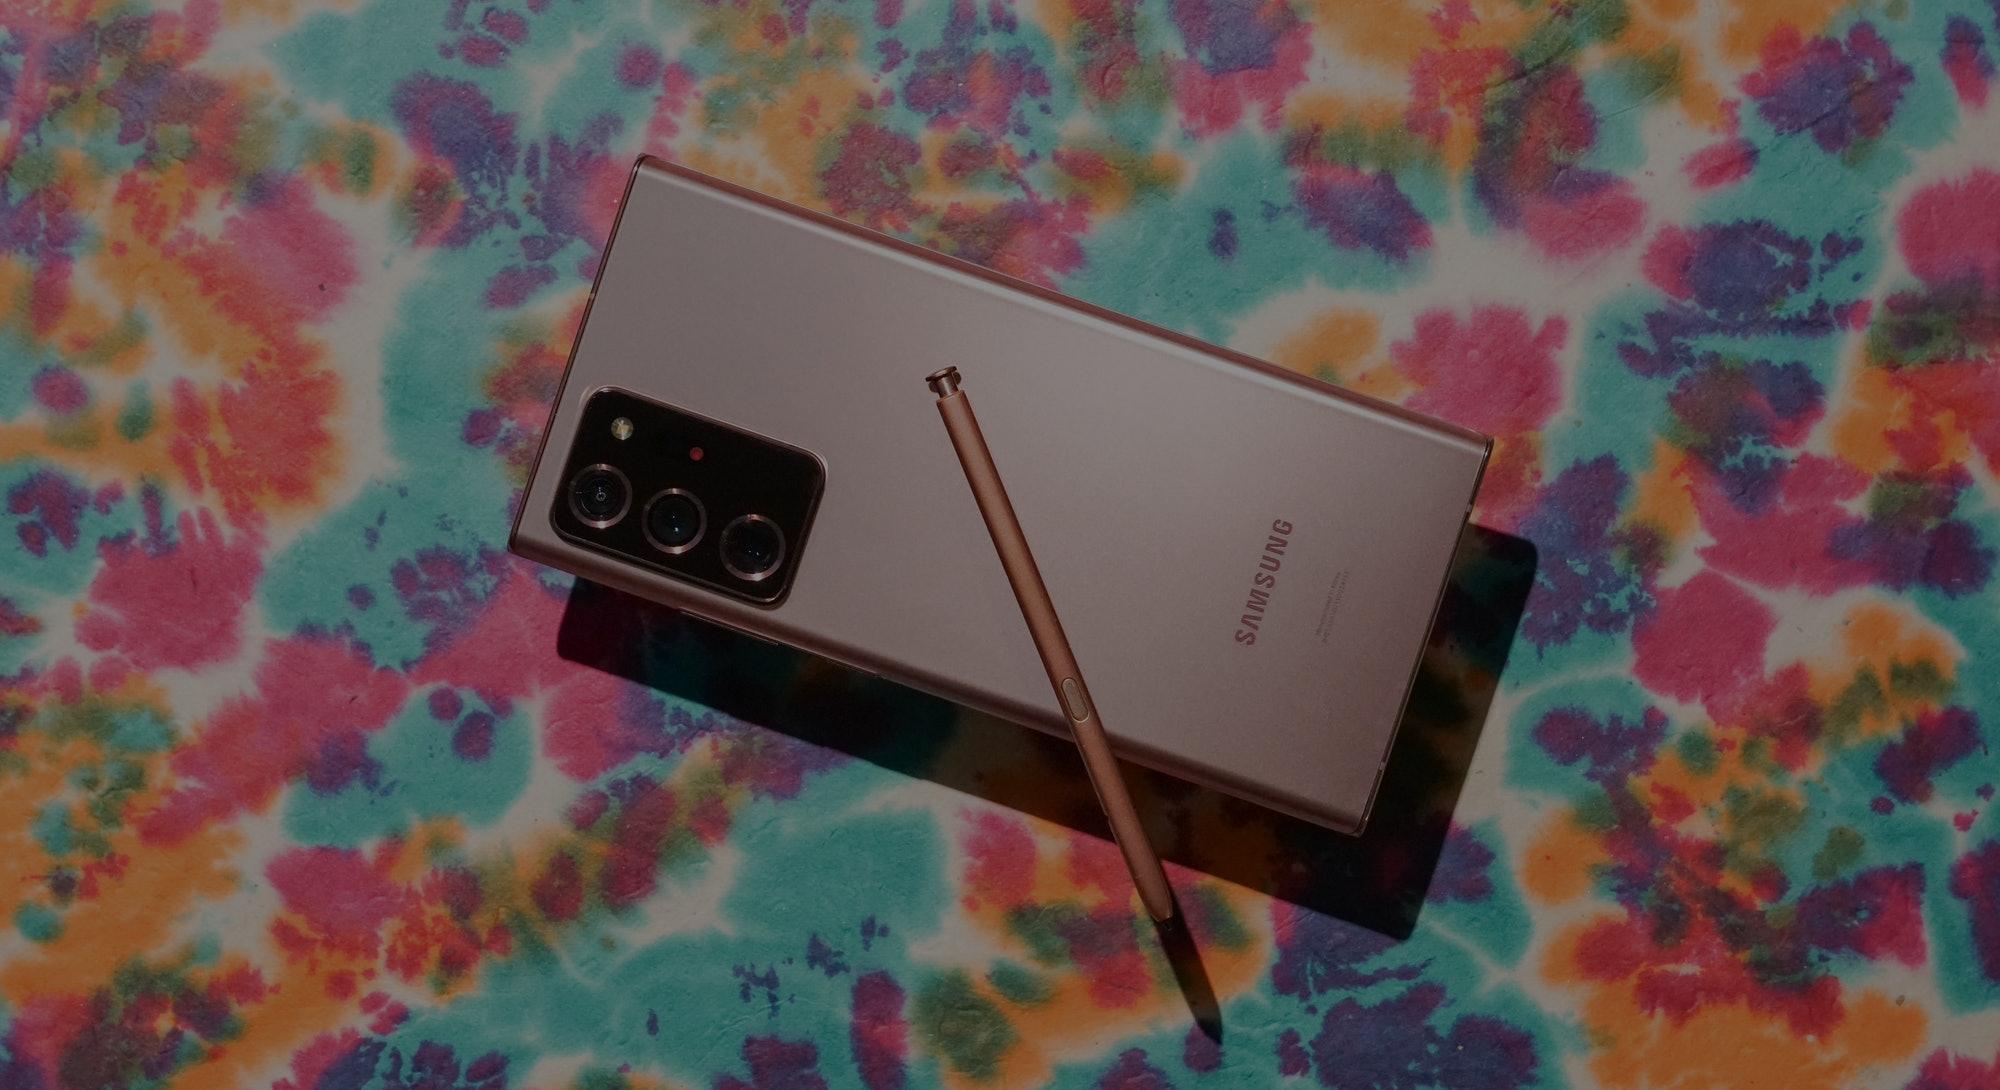 The Galaxy Note 20 Ultra with S Pen.